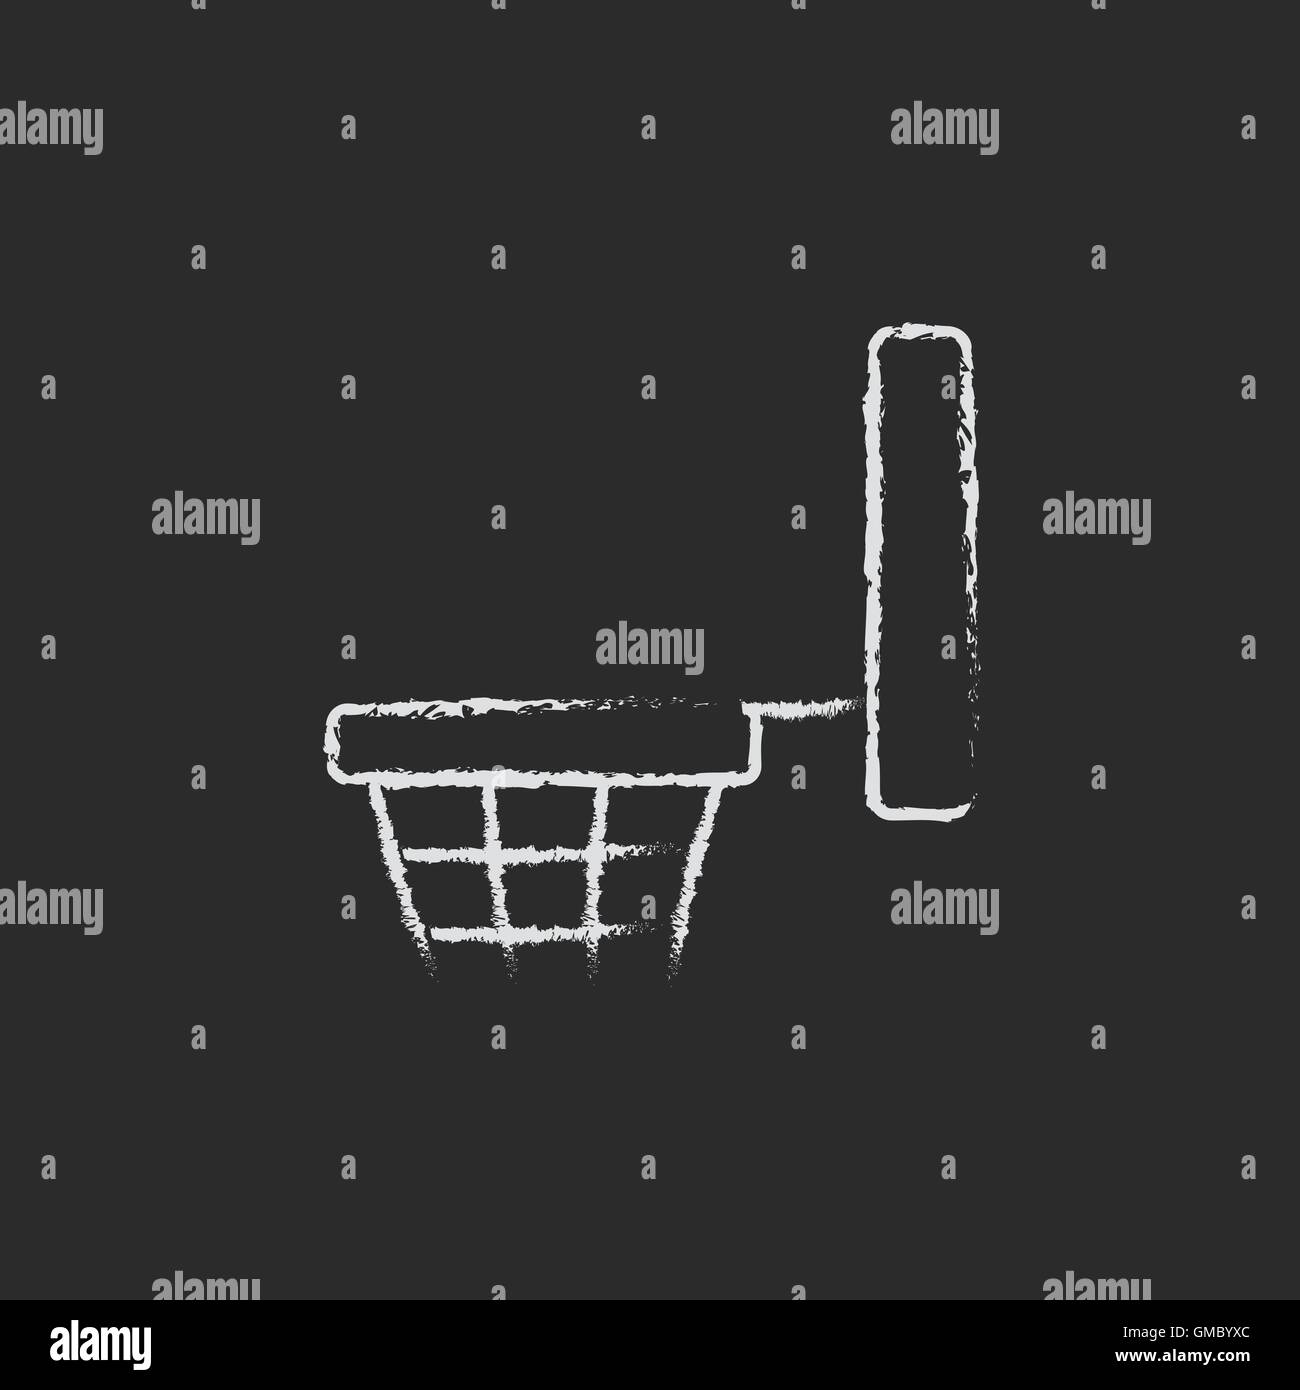 Basketball hoop icon drawn in chalk. - Stock Image